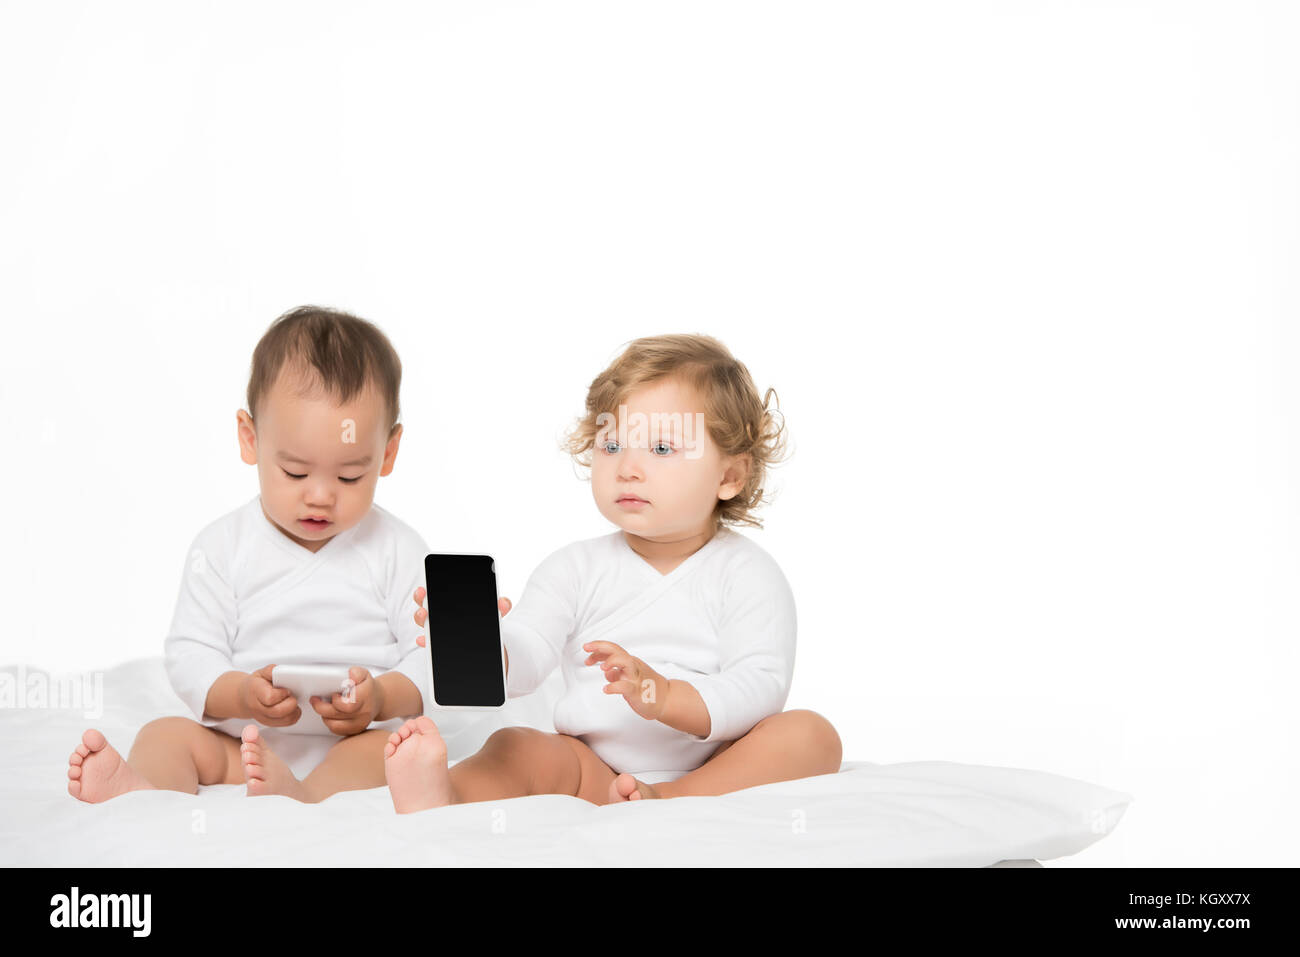 multicultural toddlers with digital smartphones - Stock Image